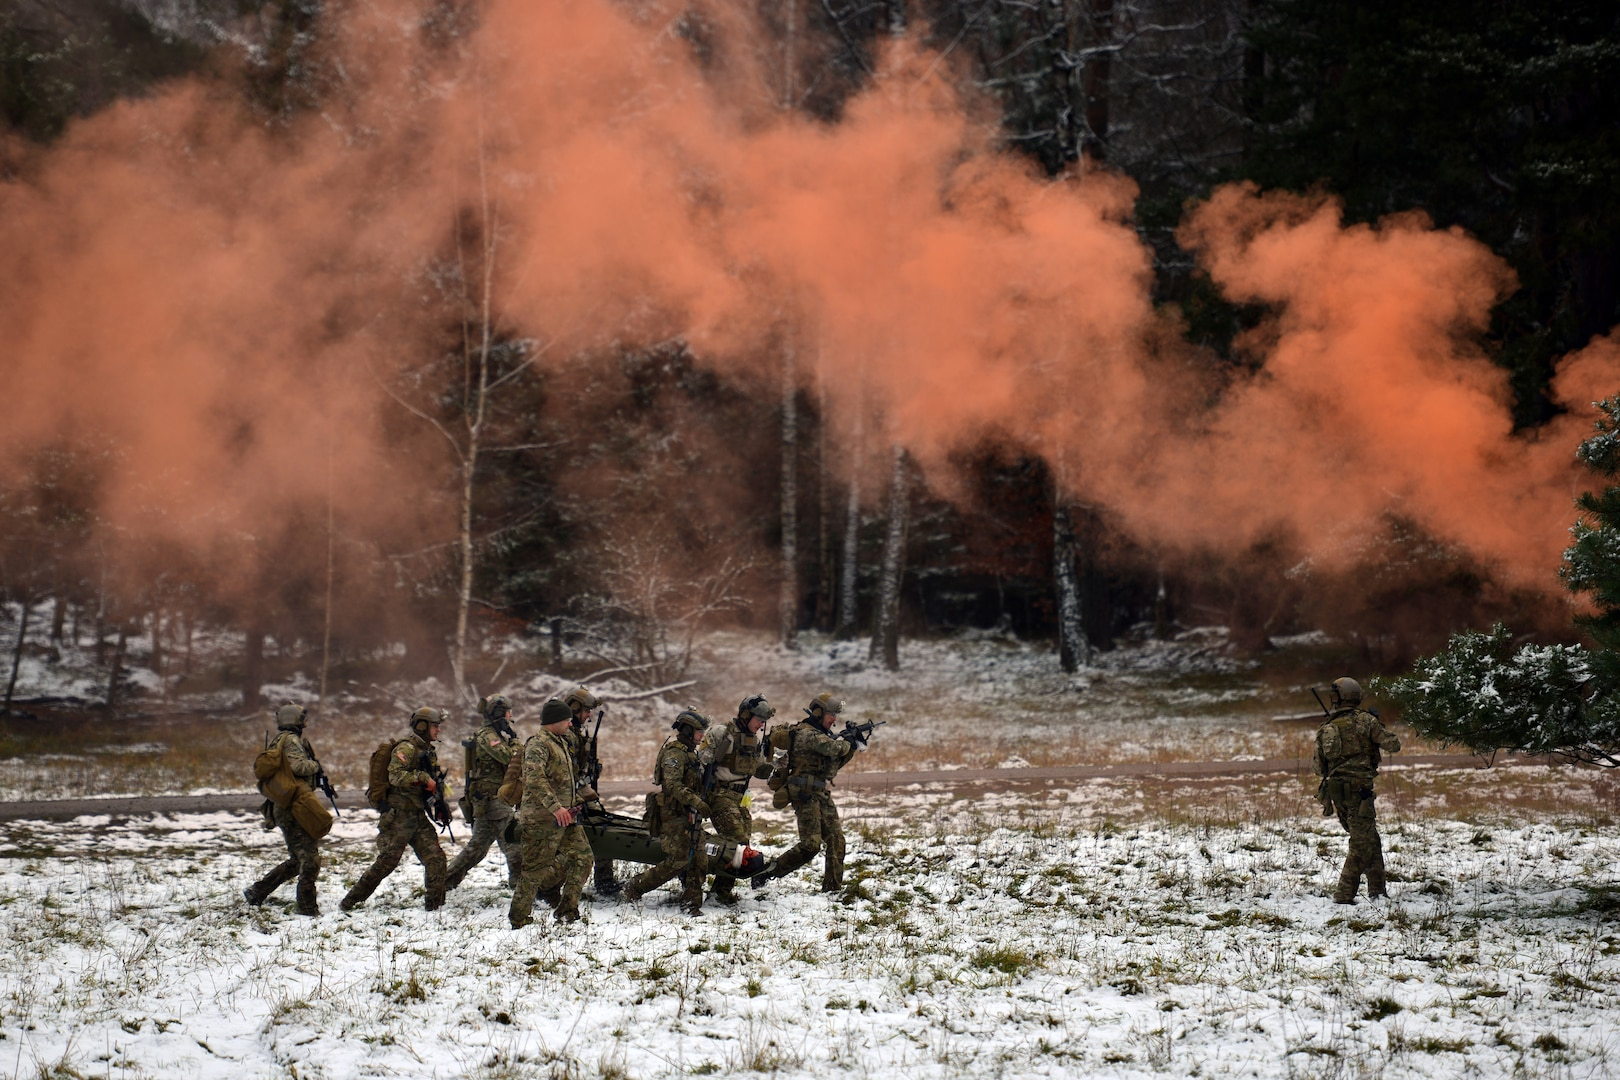 Soldiers assigned to 10th Special Forces Group (Airborne) conduct urban operations training near Stuttgart, Germany (U.S. Army/Jason Johnston)